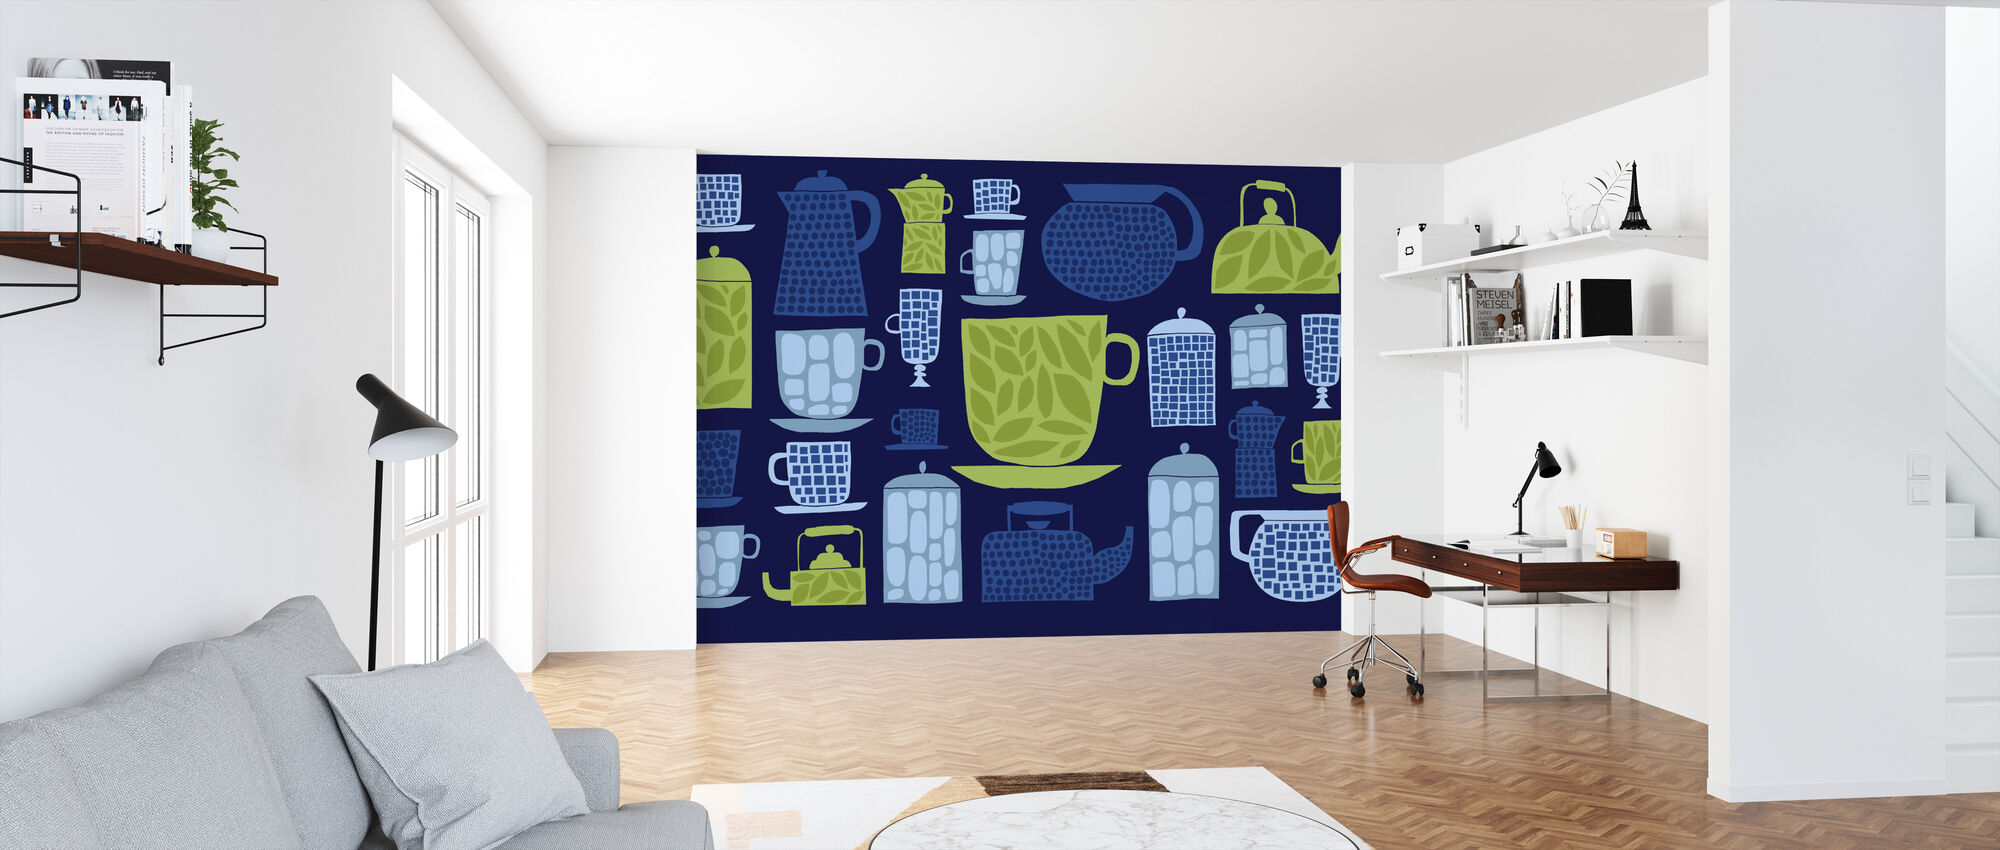 Retro Kitchen II - Wallpaper - Office